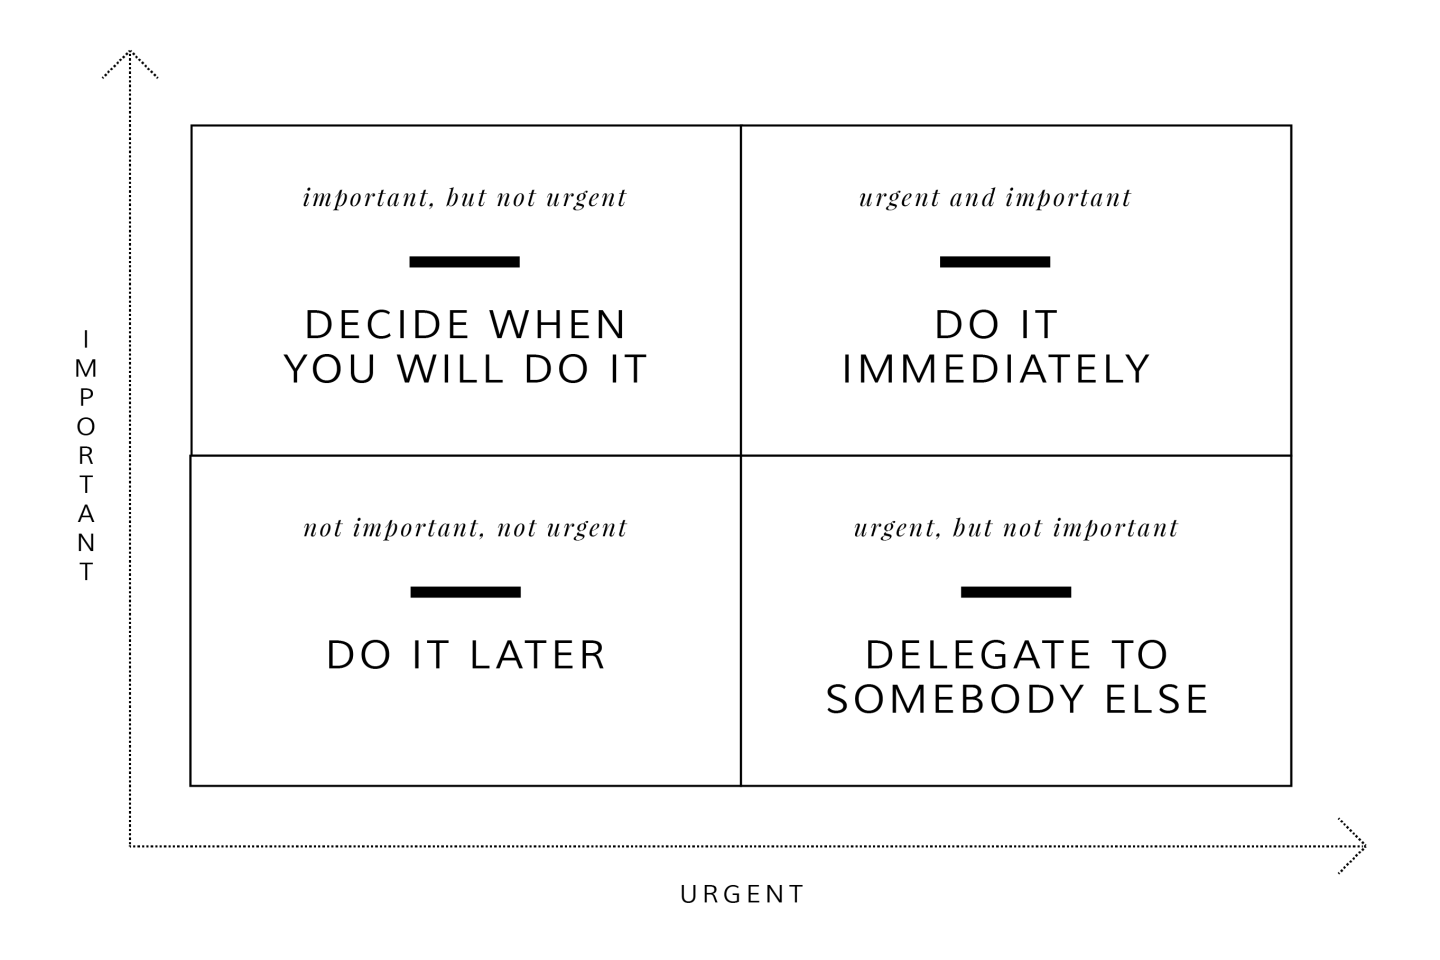 Image showing the Eisenhower Matrix from CALMERme.com